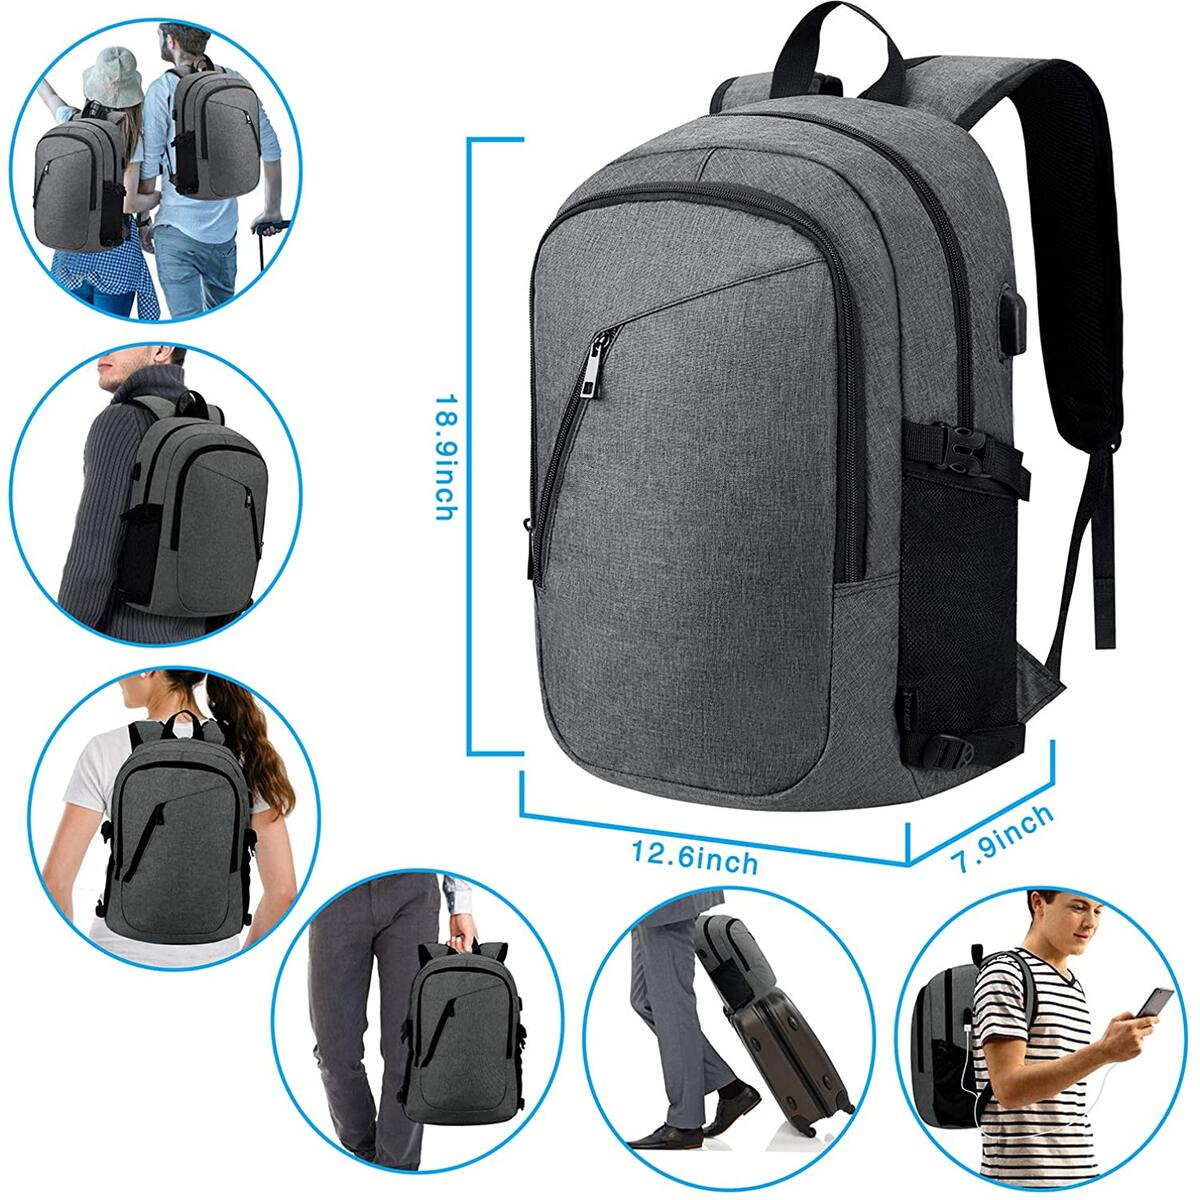 Laptop Backpack Business Durable School bag with USB Charging Port Fit 15.6 Inch Notebook